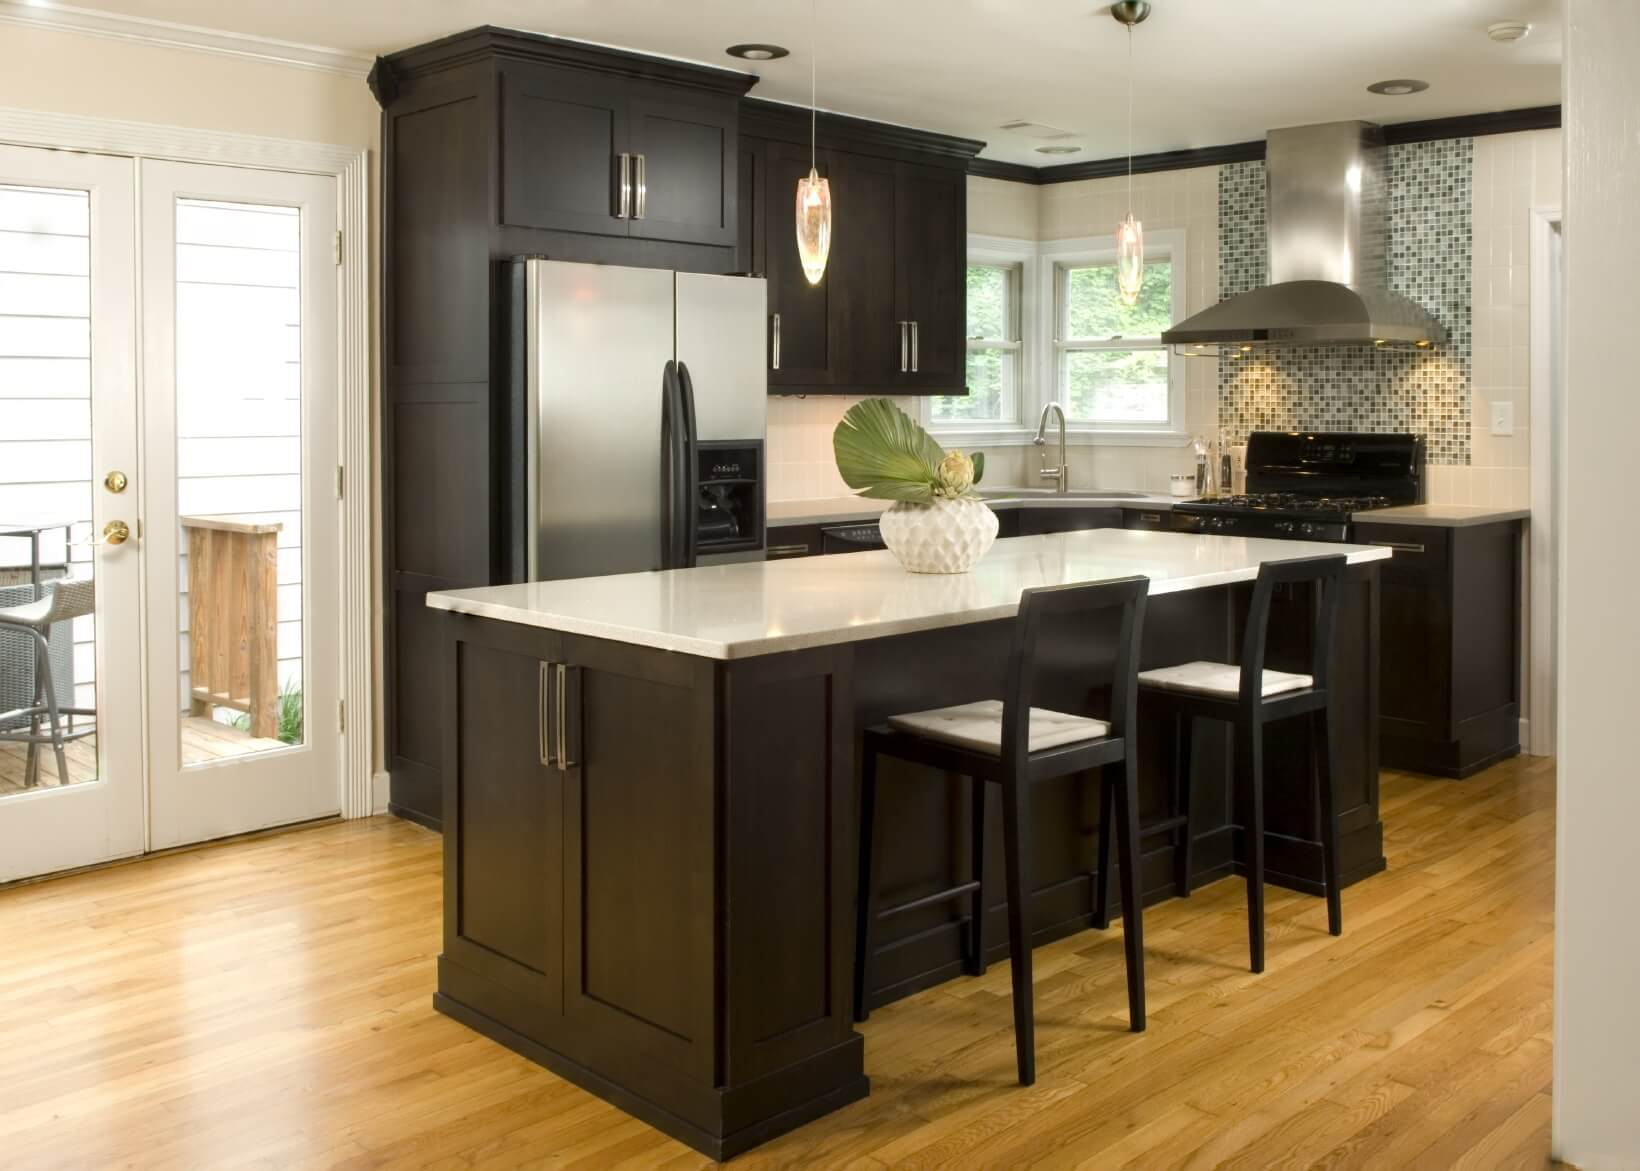 rta kitchen cabinets why you should use them in your kitchen rta kitchen cabinets RTA Kitchen Cabinets modern